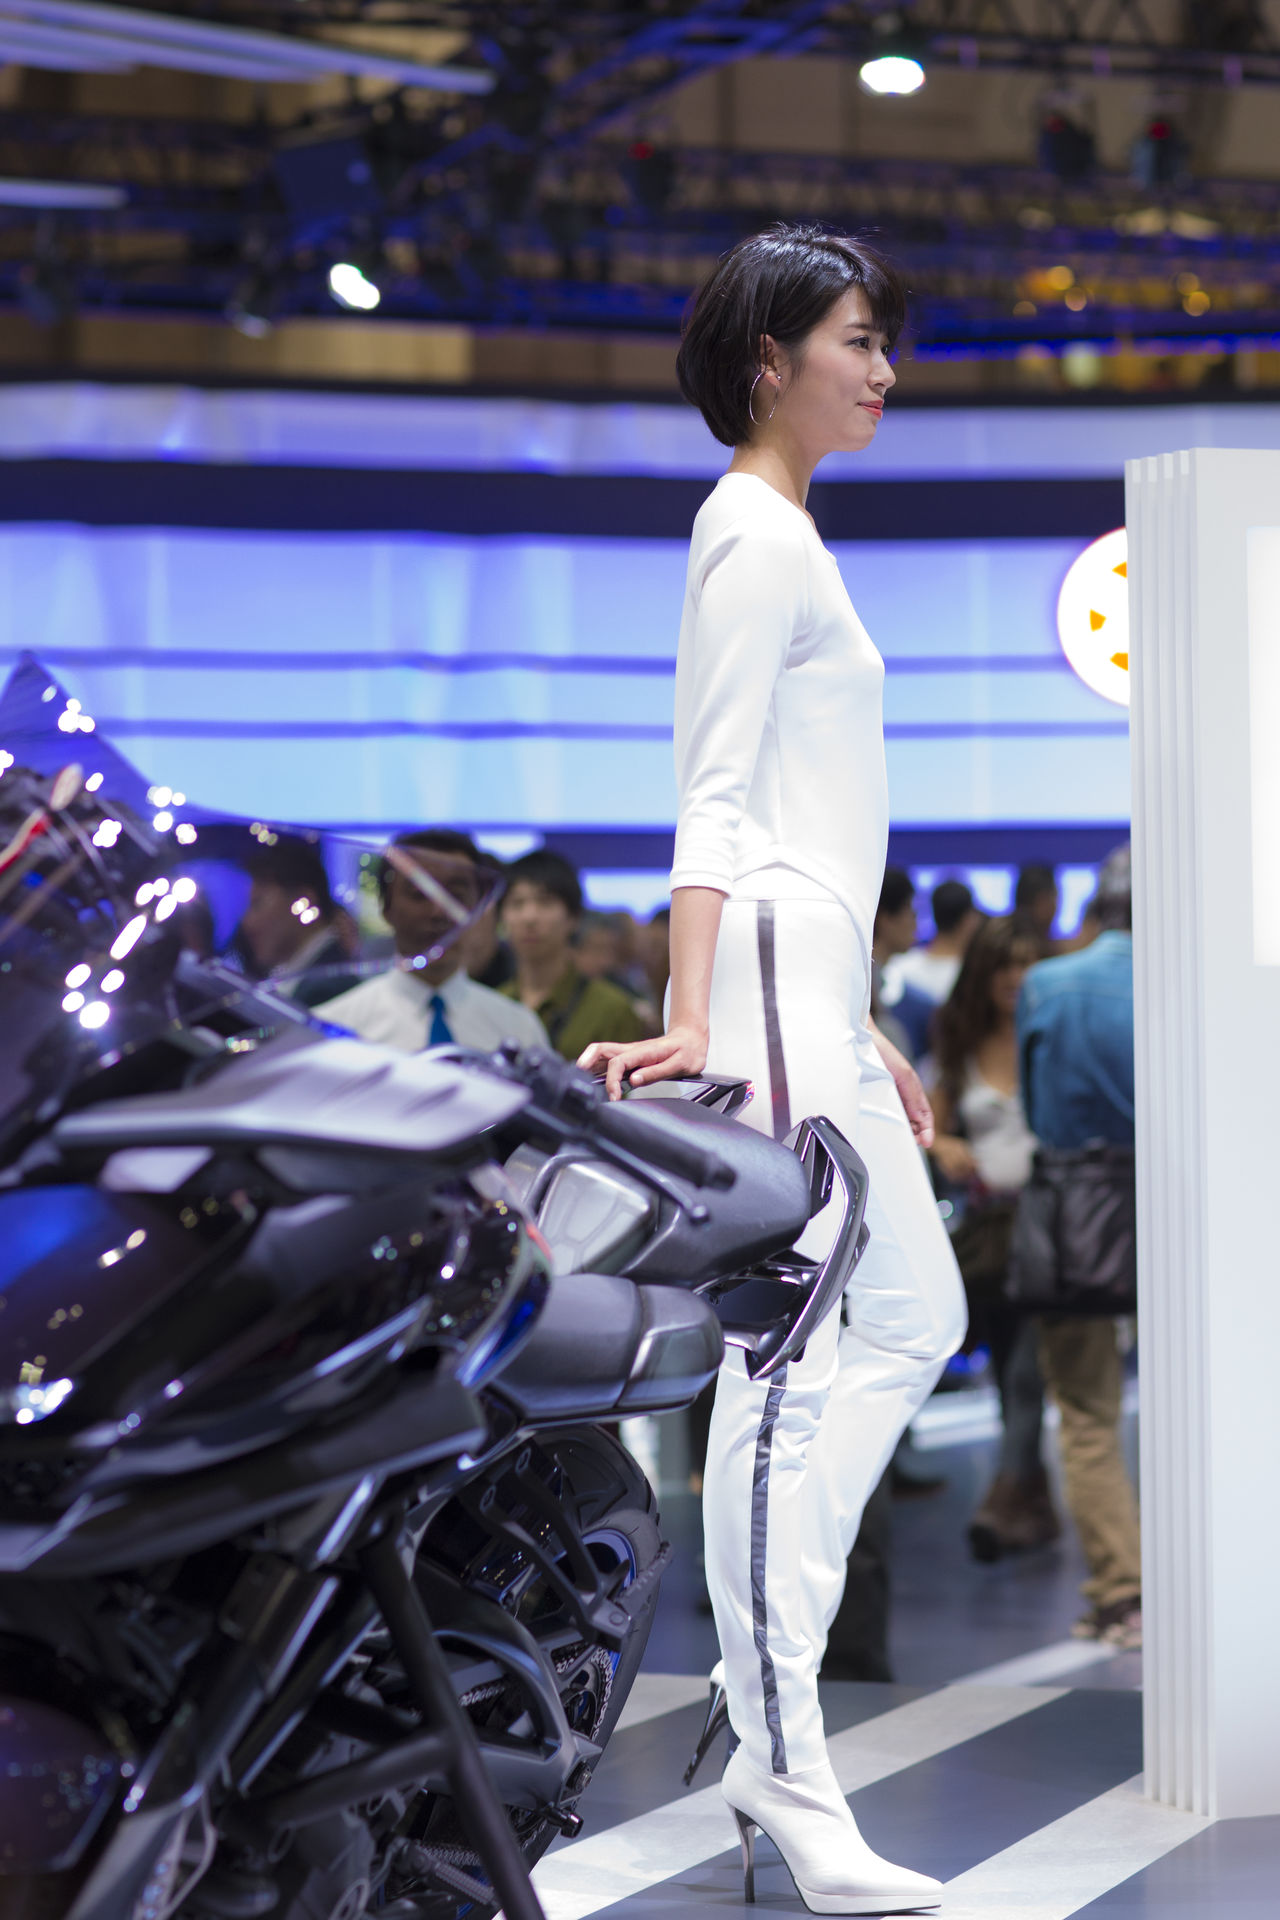 Beautiful Car Cars CarShow Lady Motorcycles Show Tokyo Tokyomotorshow2015 東京 東京モーターショー2015